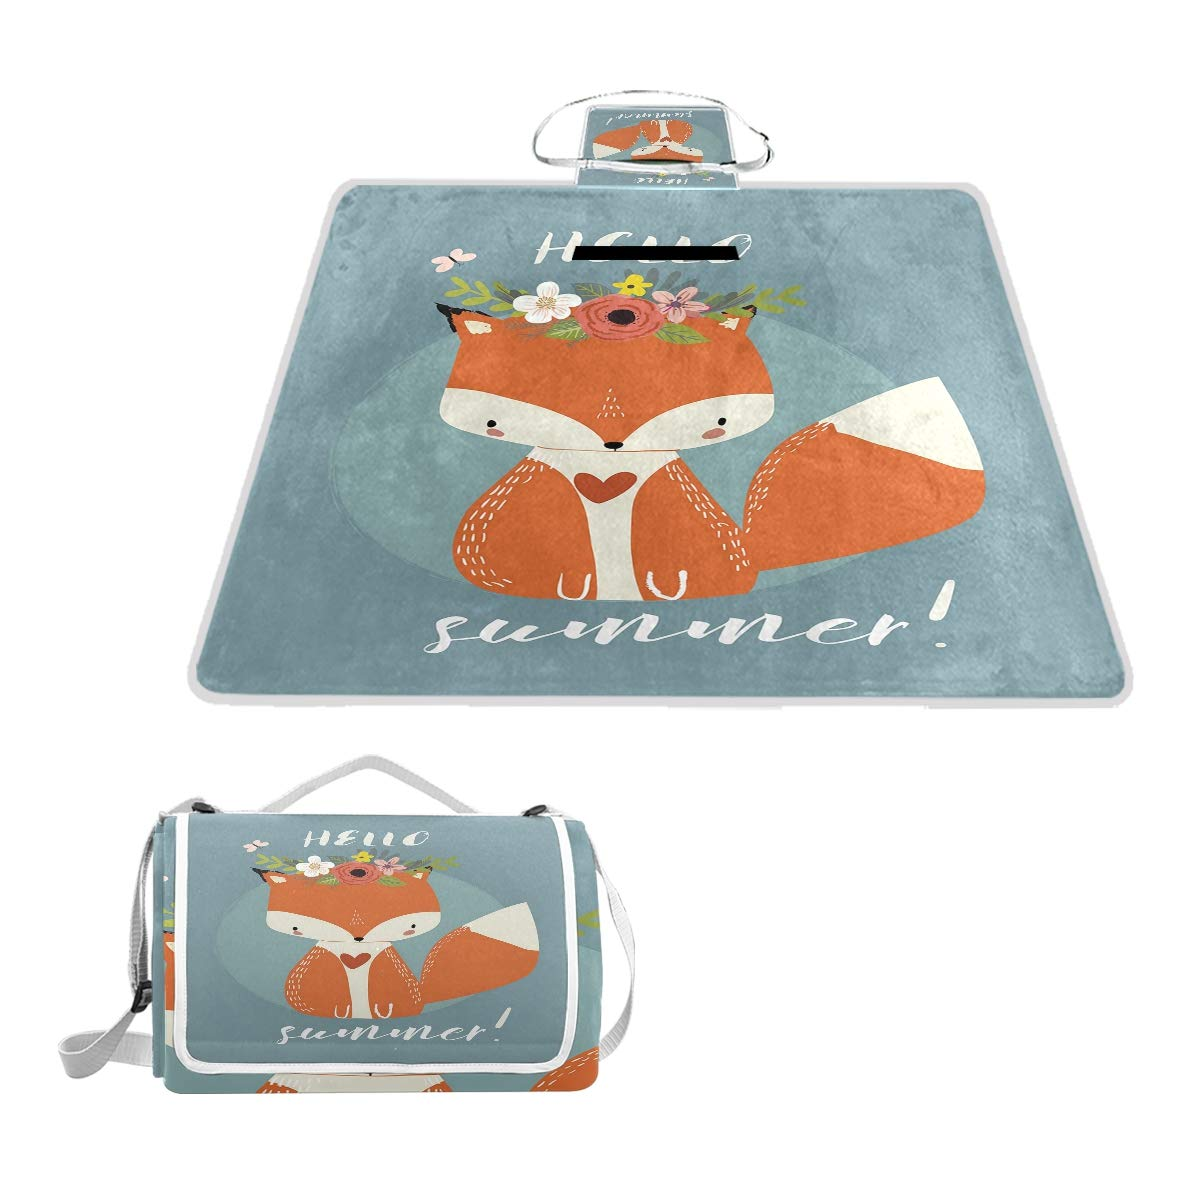 KVMV Greetings to The Coming of Summer Season Drawing Fox with Flourishing Flowers Picnic Mat Sandproof and Waterproof Outdoor Picnic Blanket for Camping Hiking Beach Grass Travel by KVMV